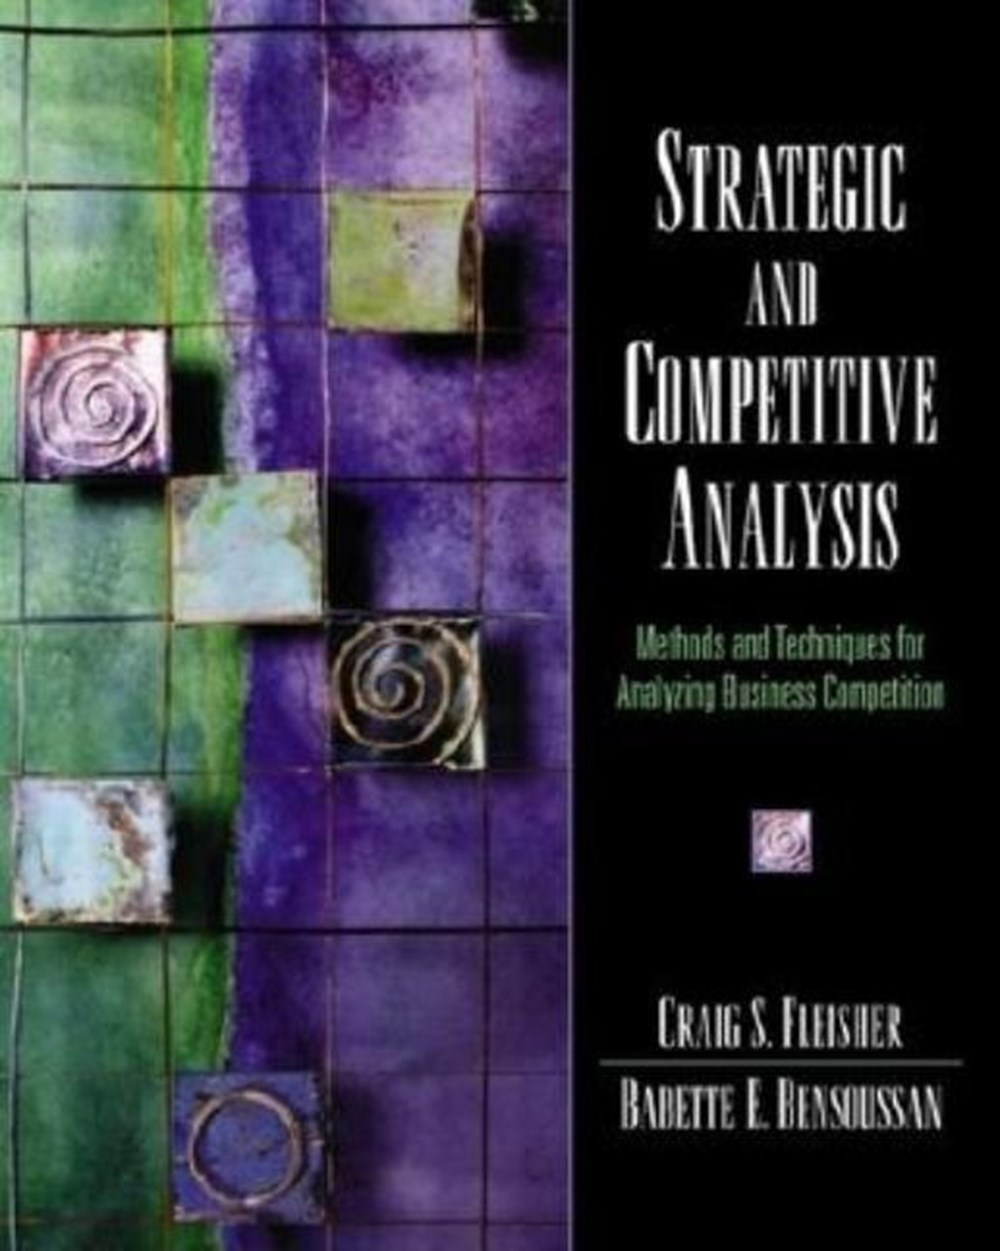 Strategic and Competitive Analysis Methods and Techniques for Analyzing Business Competition